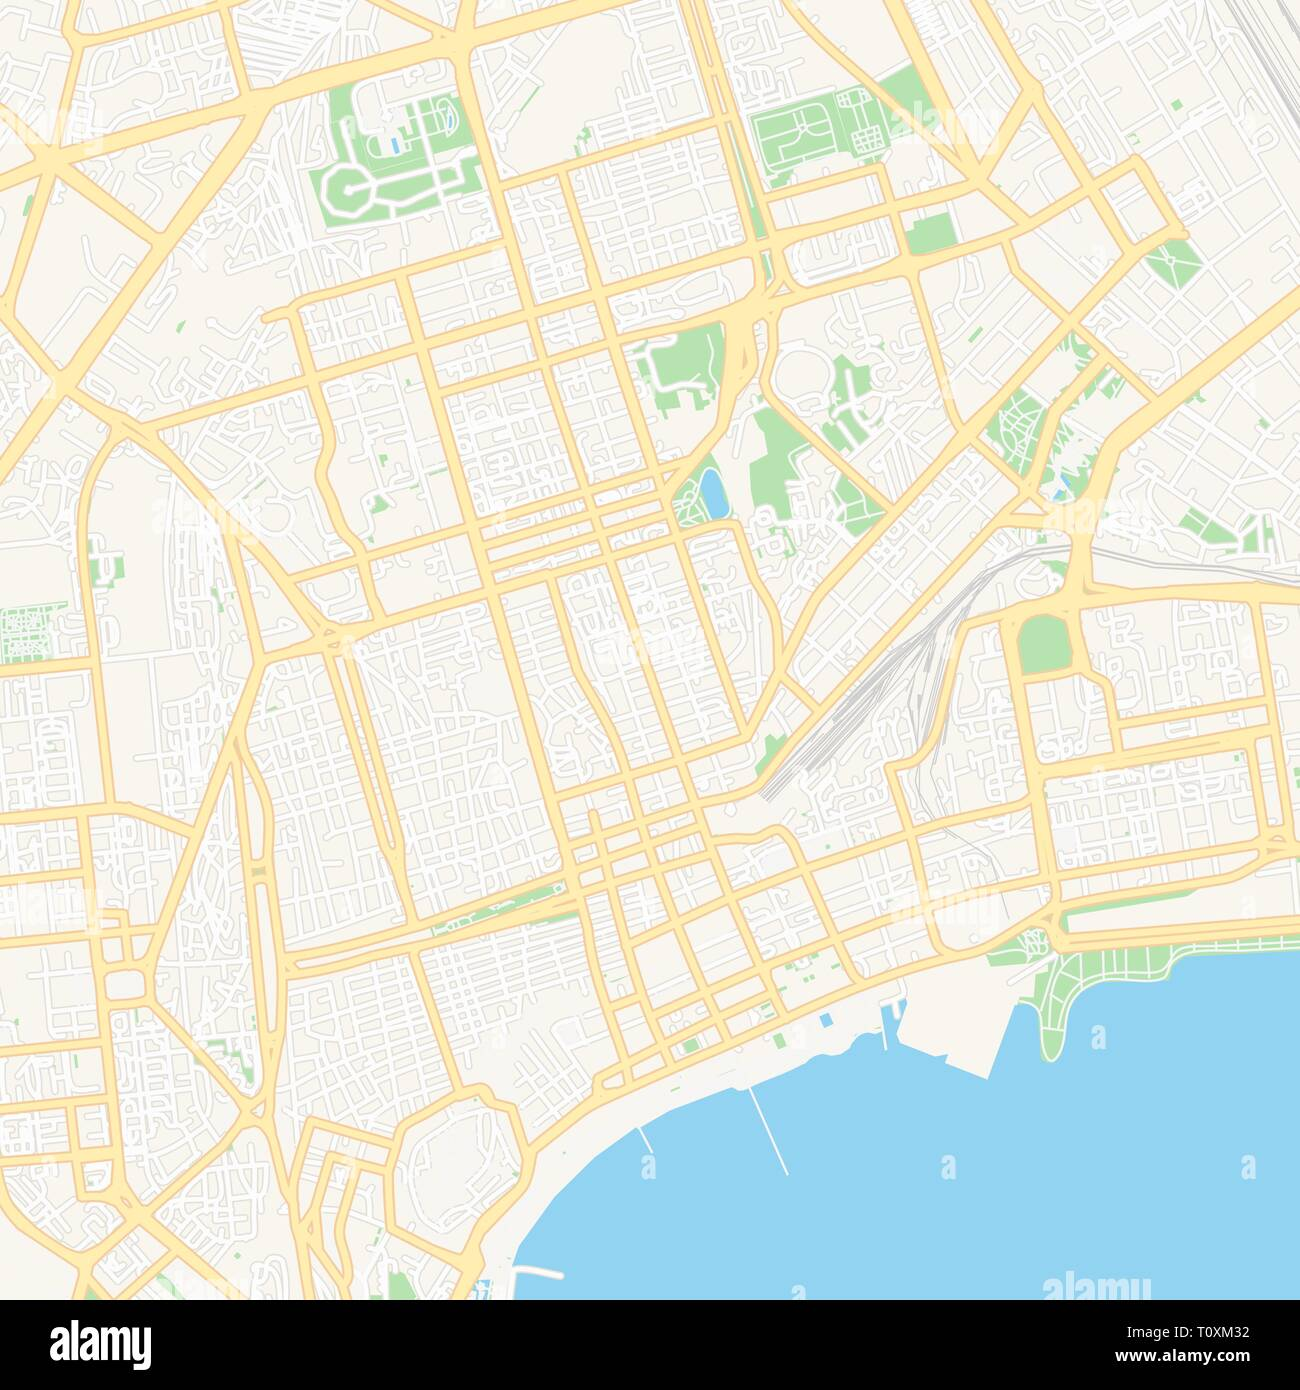 Printable map of Baku, Azerbaijan with main and secondary roads and larger railways. This map is carefully designed for routing and placing individual - Stock Vector